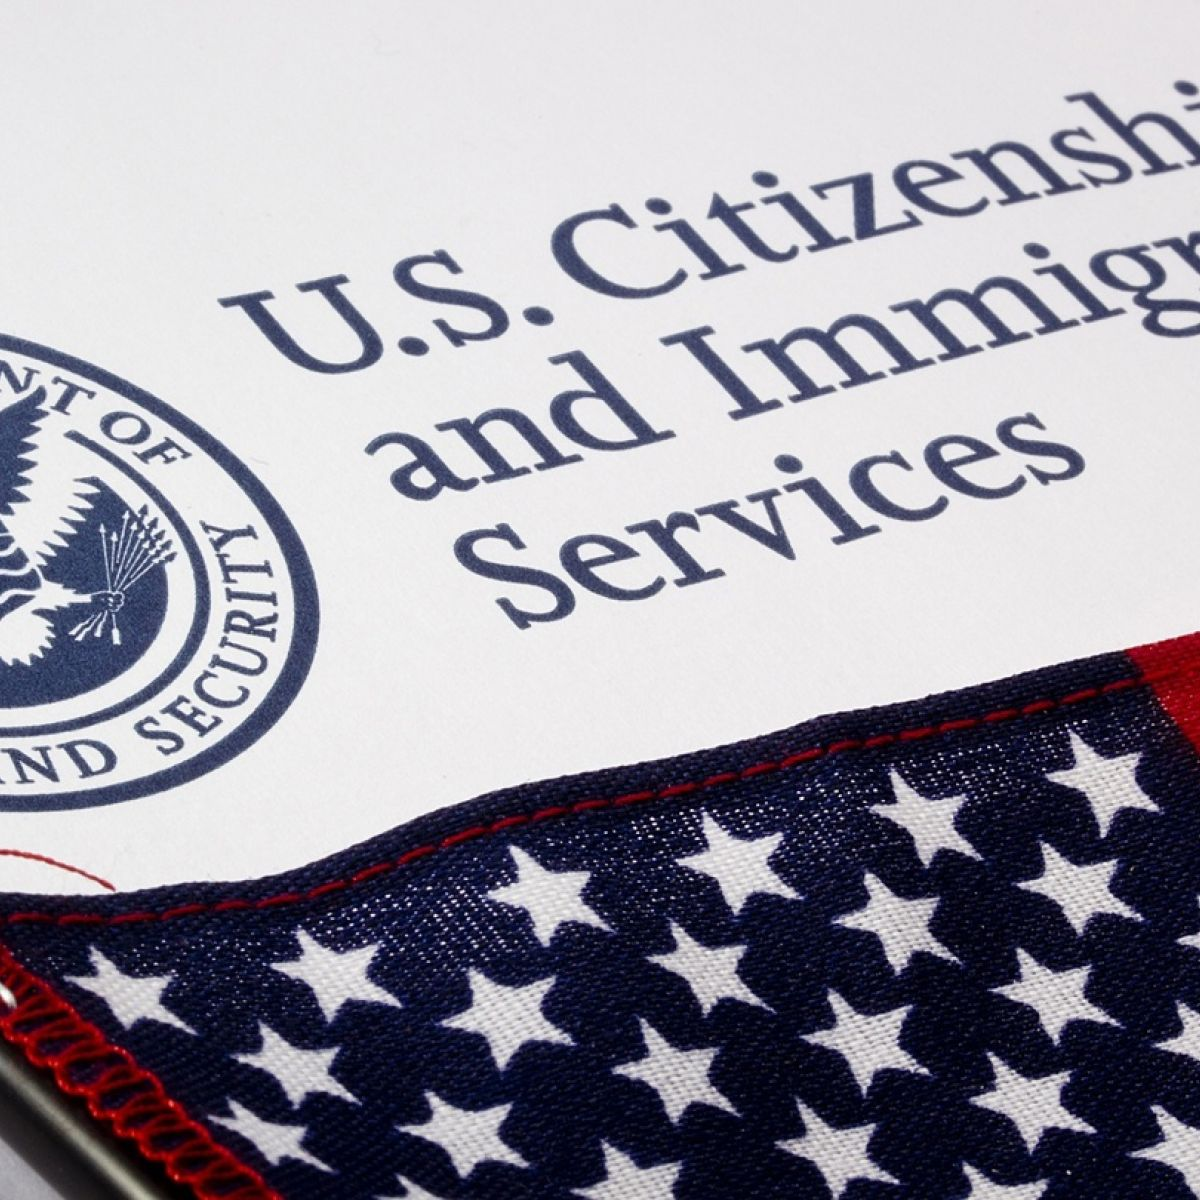 Why should Irish immigrants be treated better than others?\'